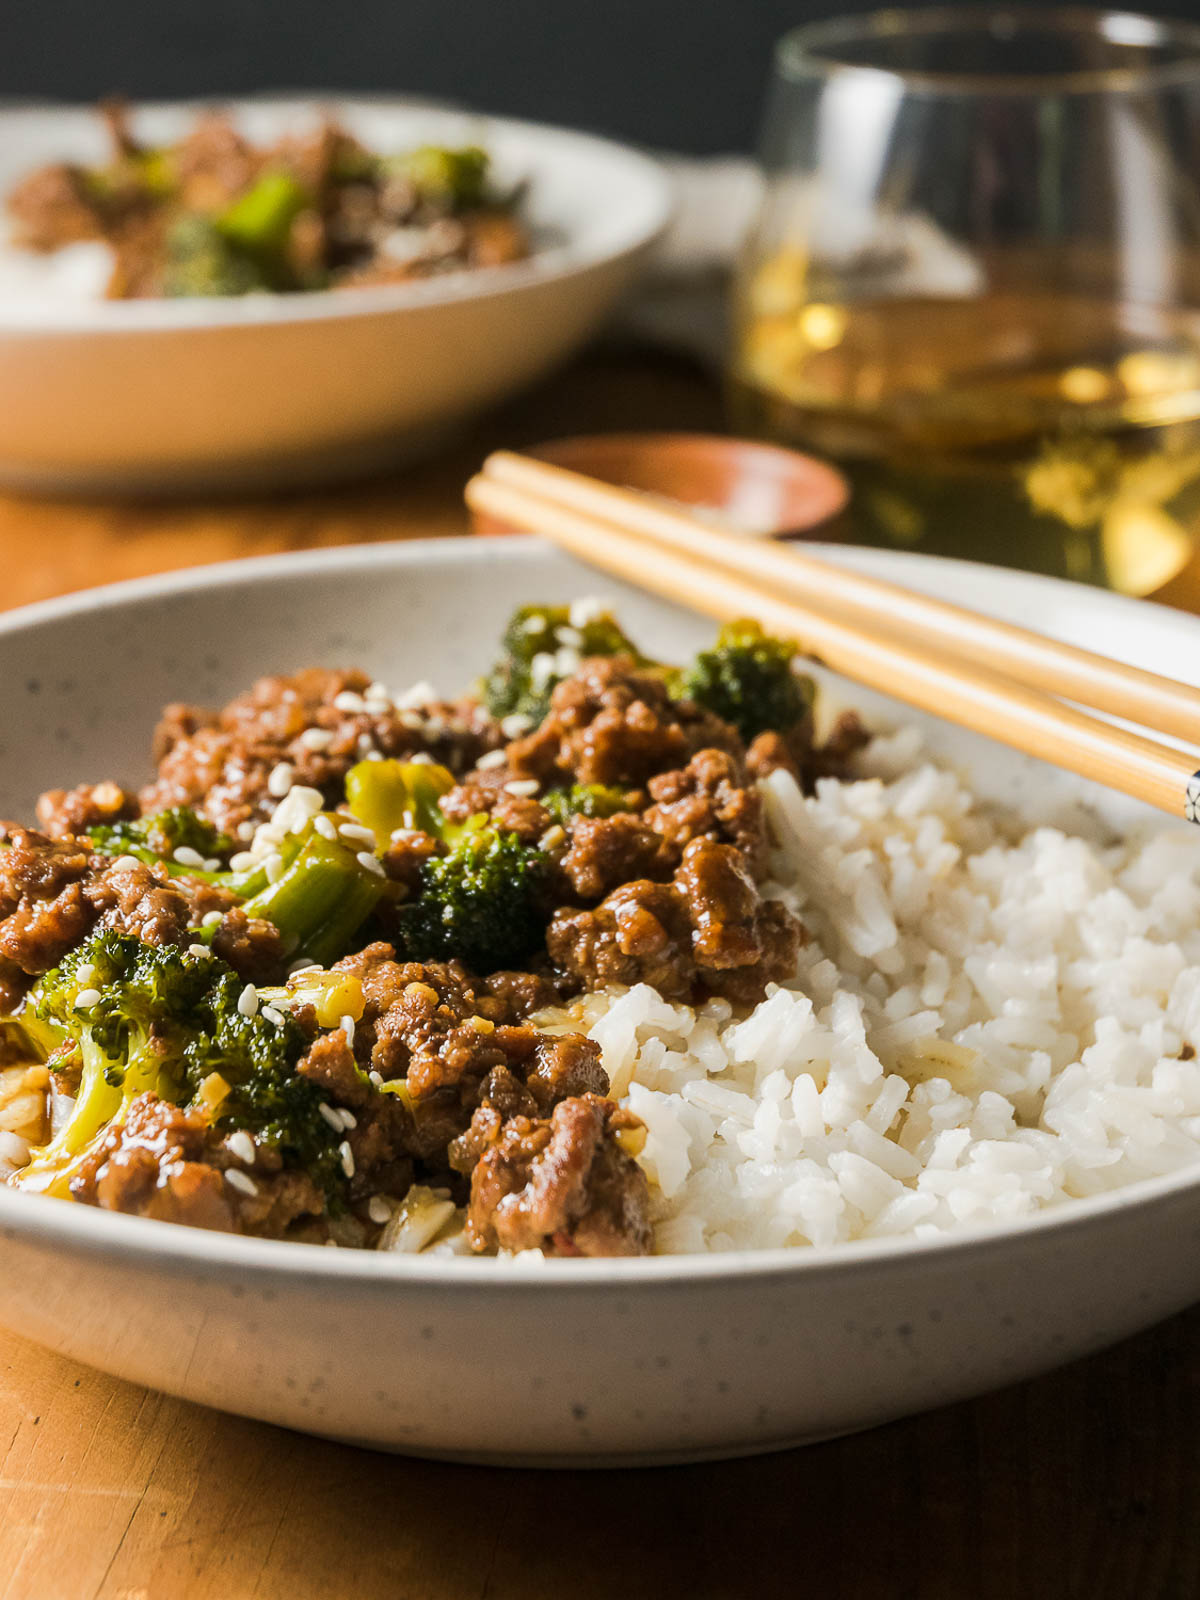 Closeup on a bowl of Ground Beef and Broccoli with rice served on a table with a drink and chopsticks.